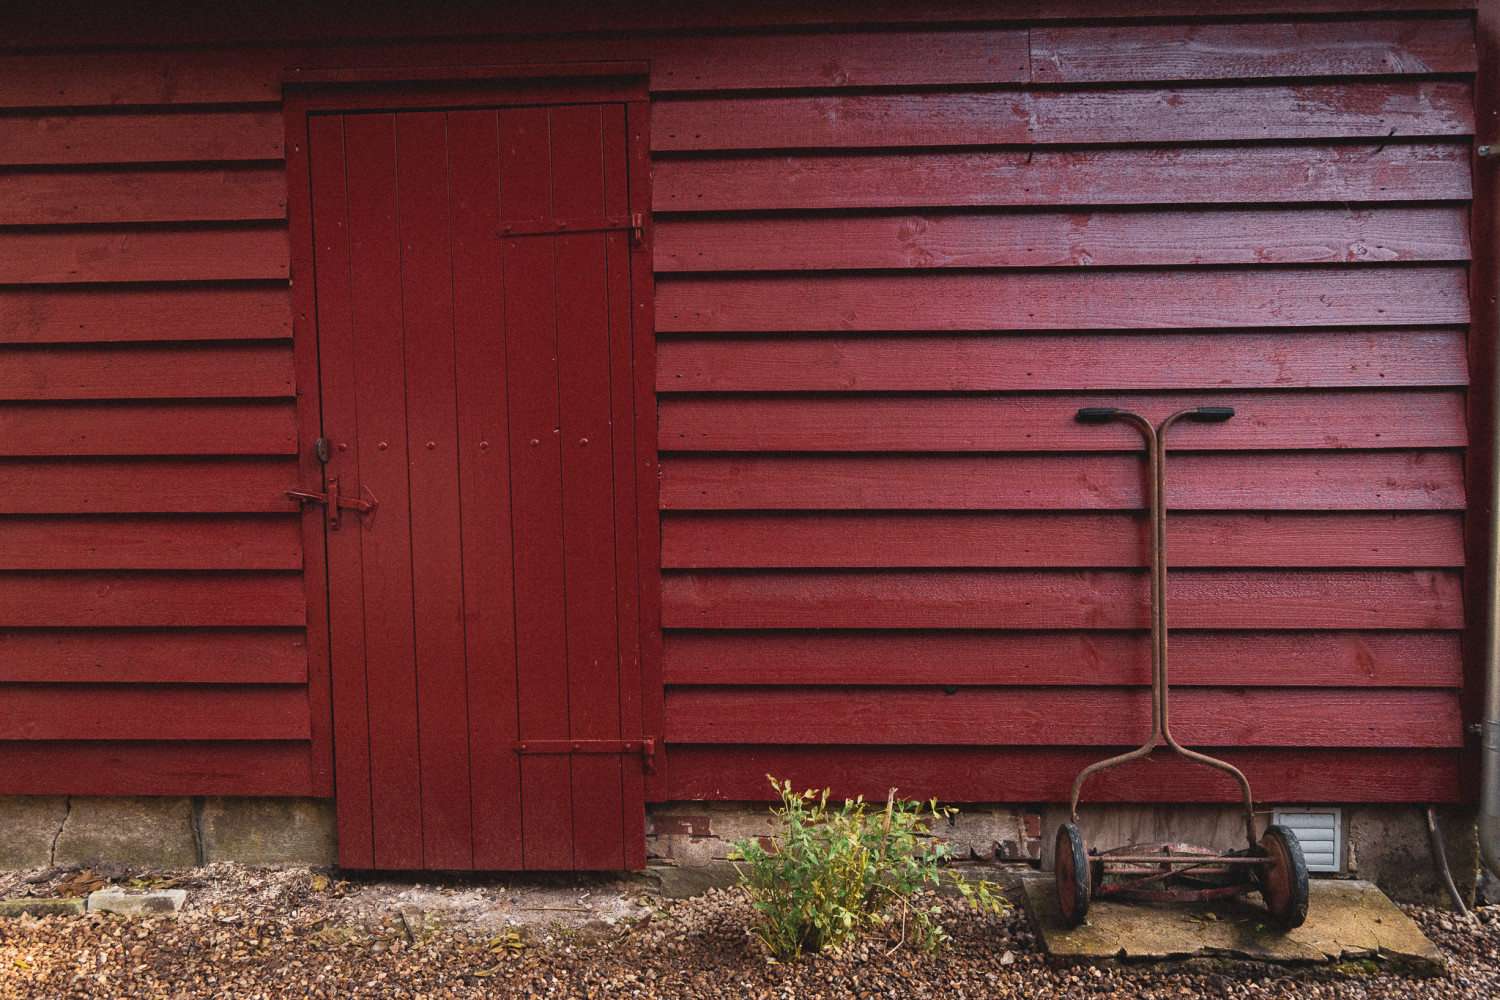 haveskur, håndskubber, garden shed, hand push grass cutter, stories by holst